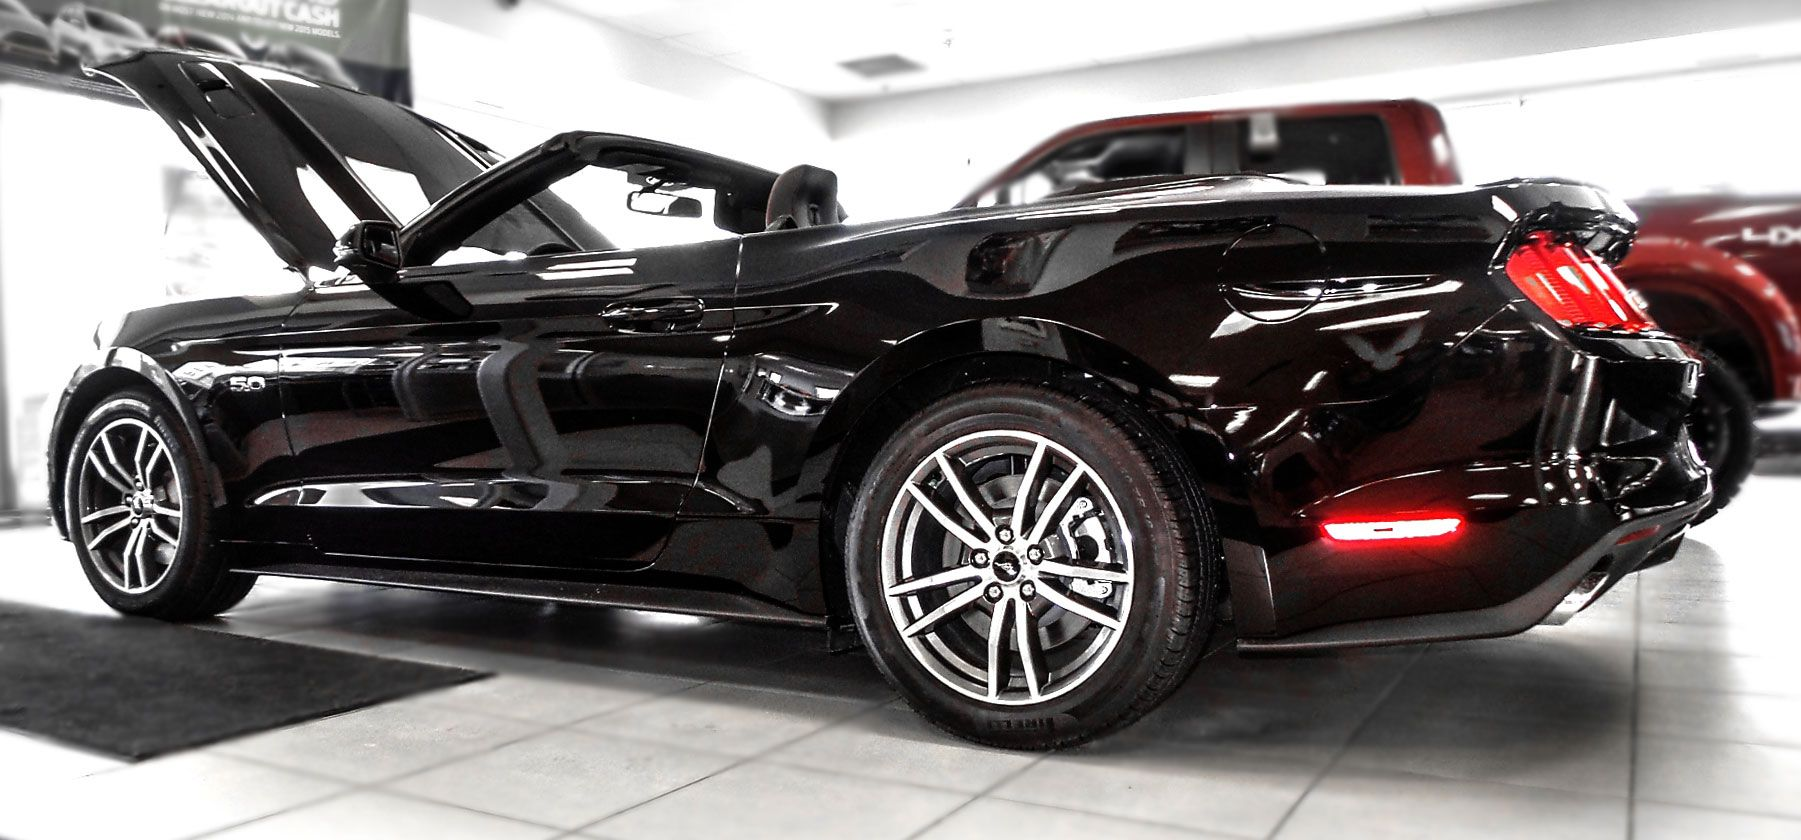 six speed manual rwd 2015 ford mustang gt premium convertible - 2015 Ford Mustang Gt Convertible Black